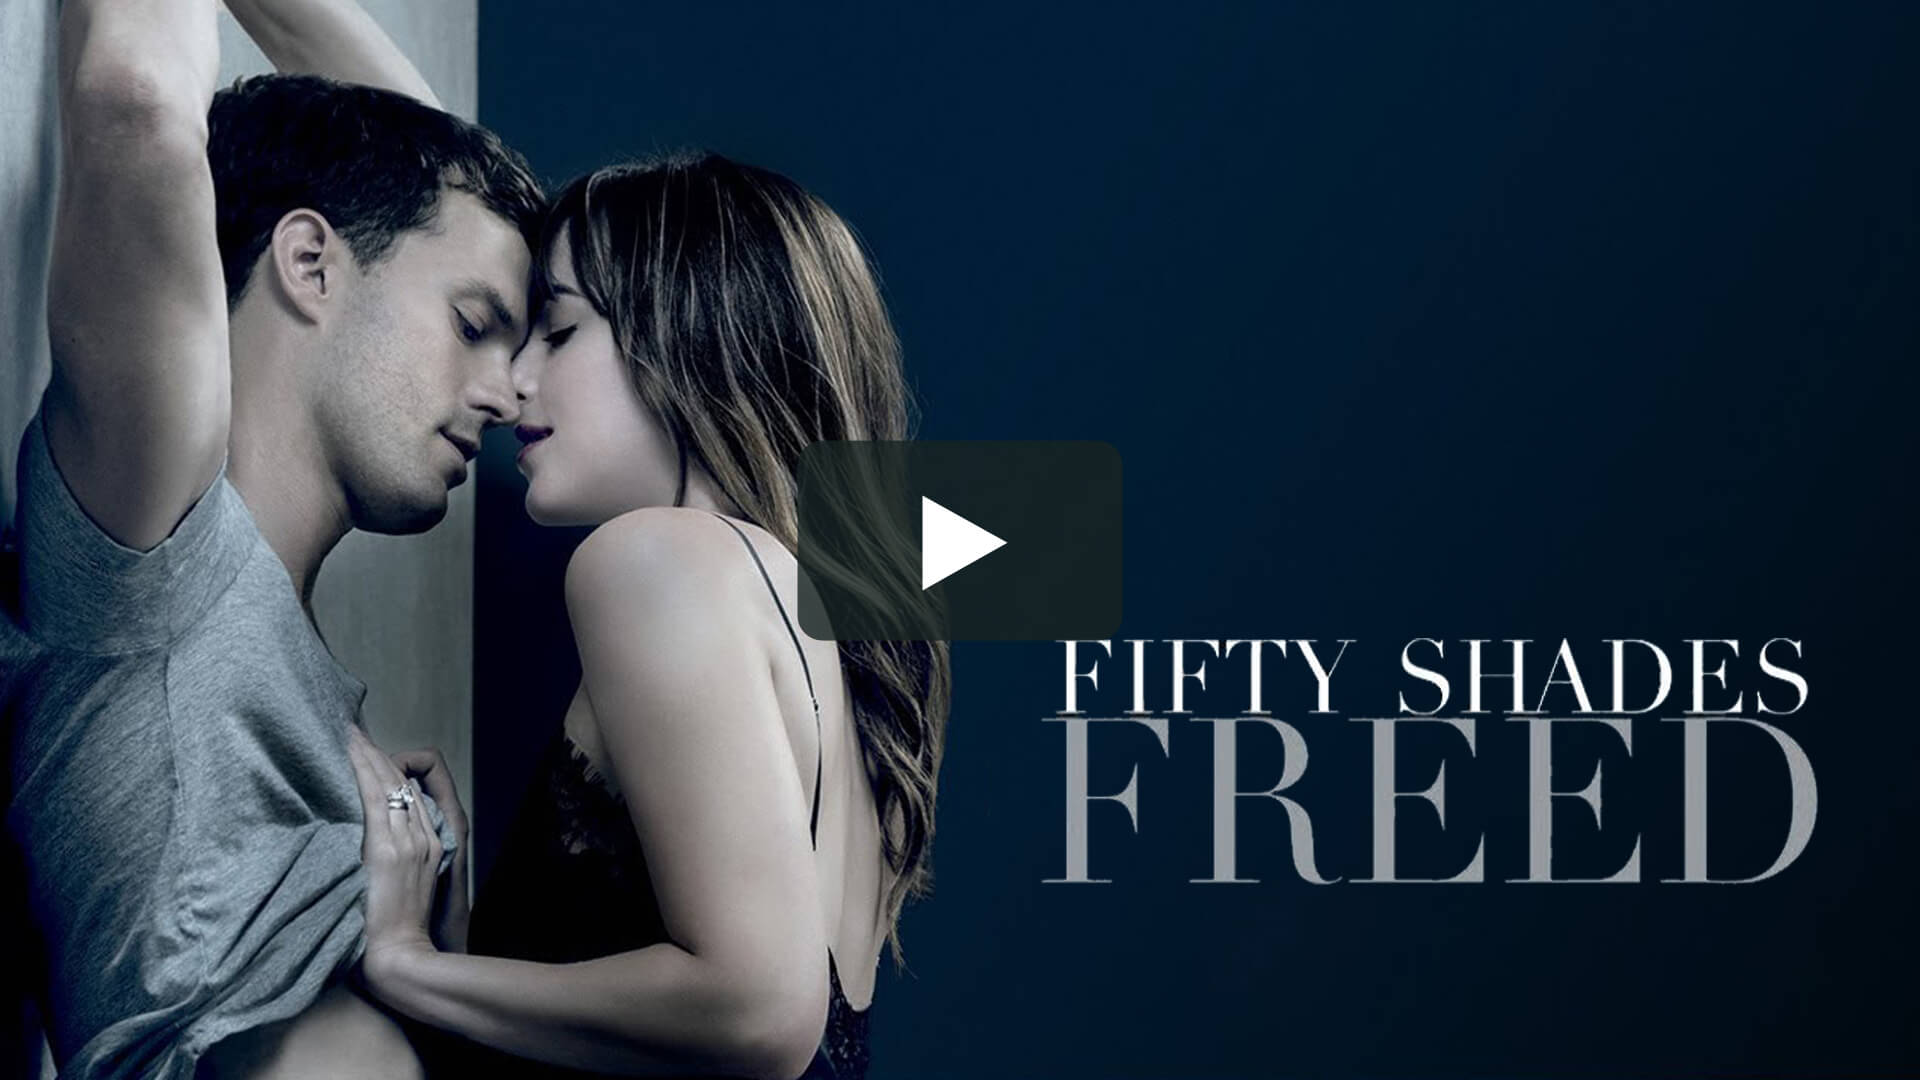 Fifty Shades Freed - 五十度飛3